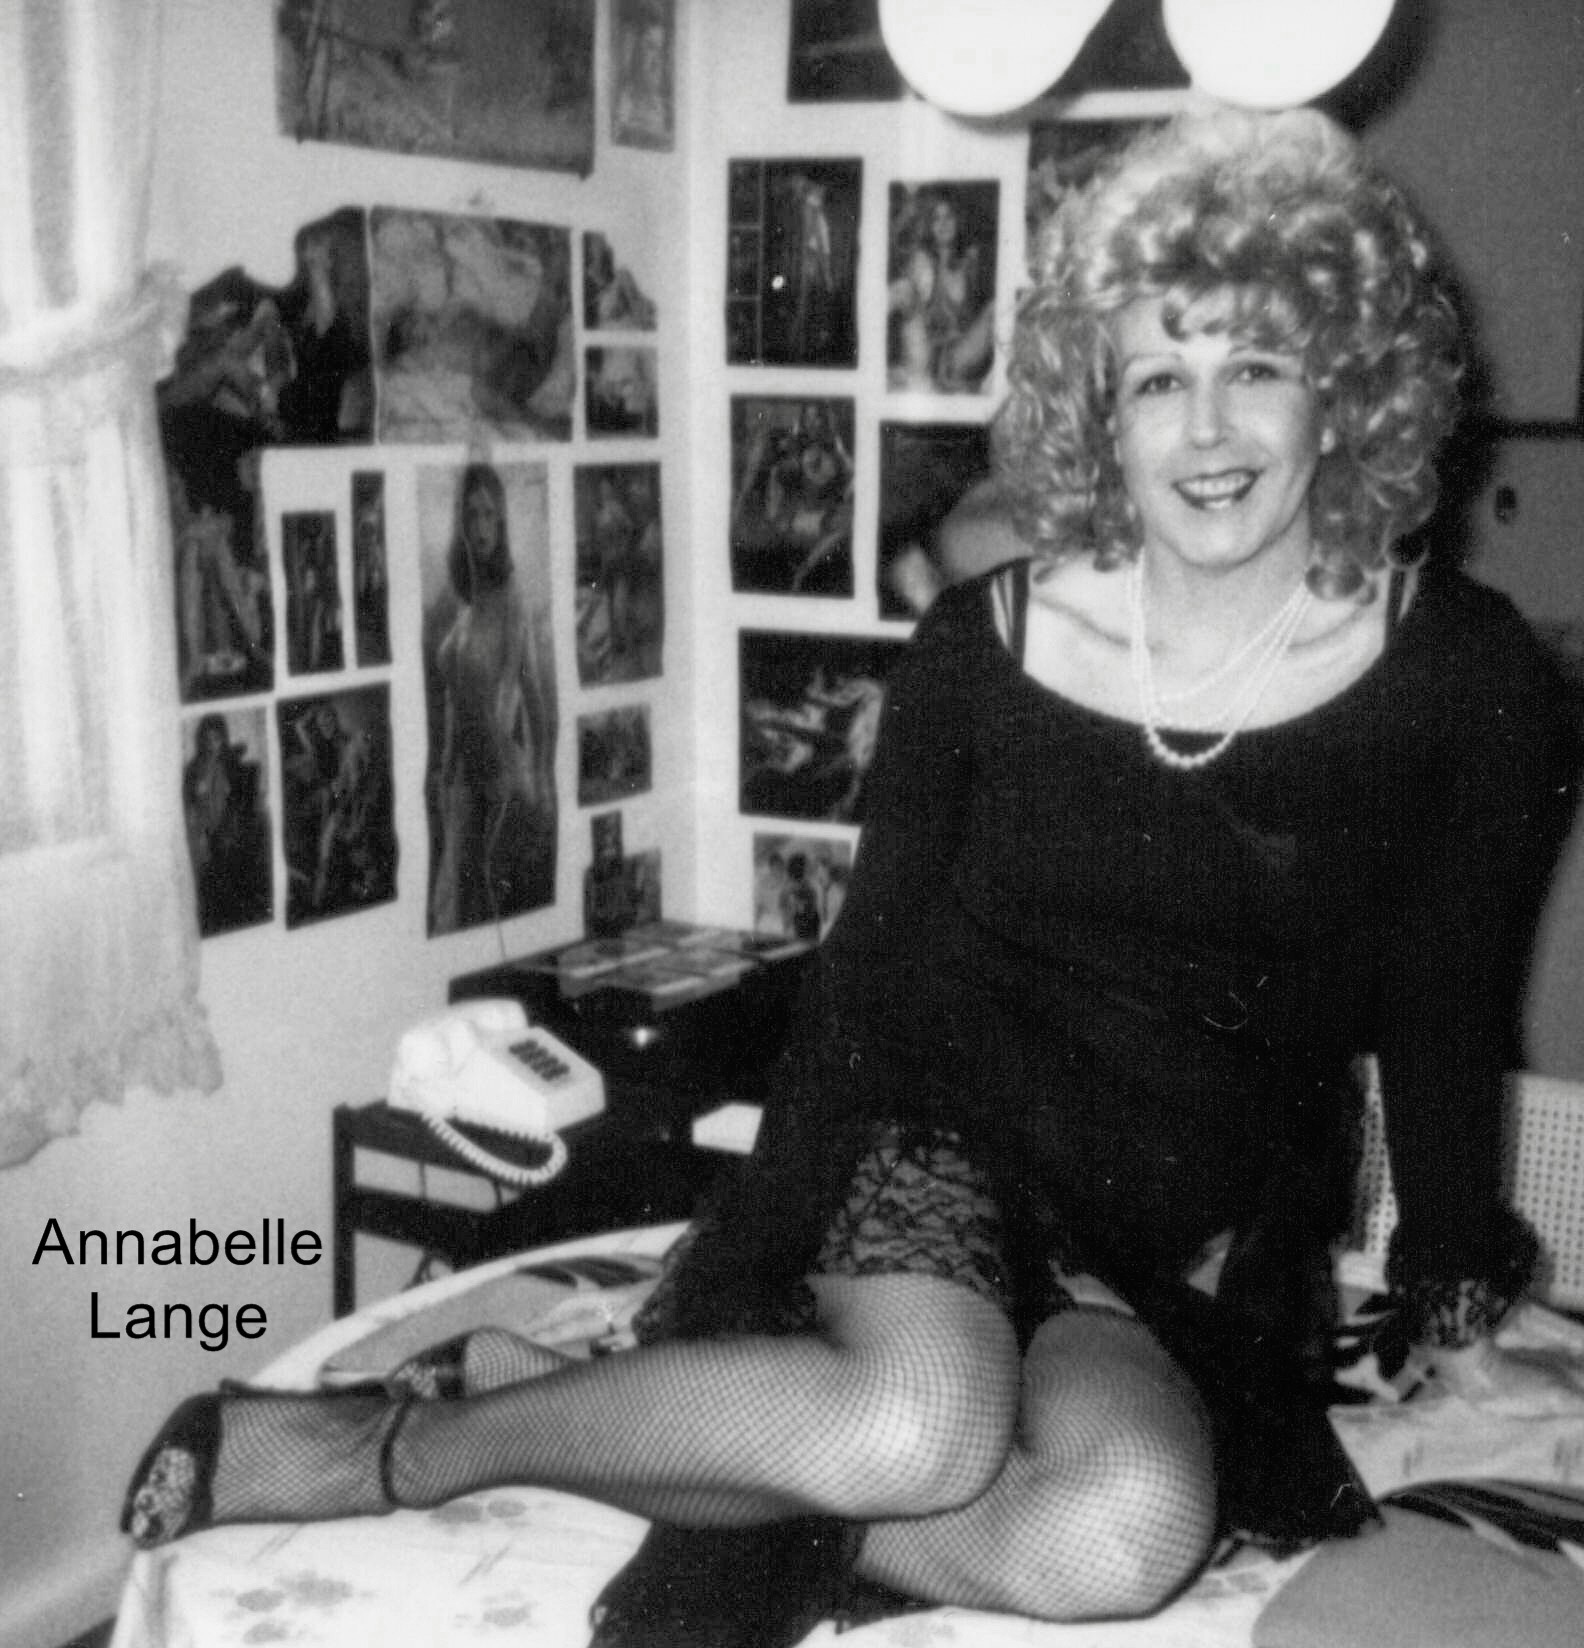 Annabelle de plus pres - 1 part 5